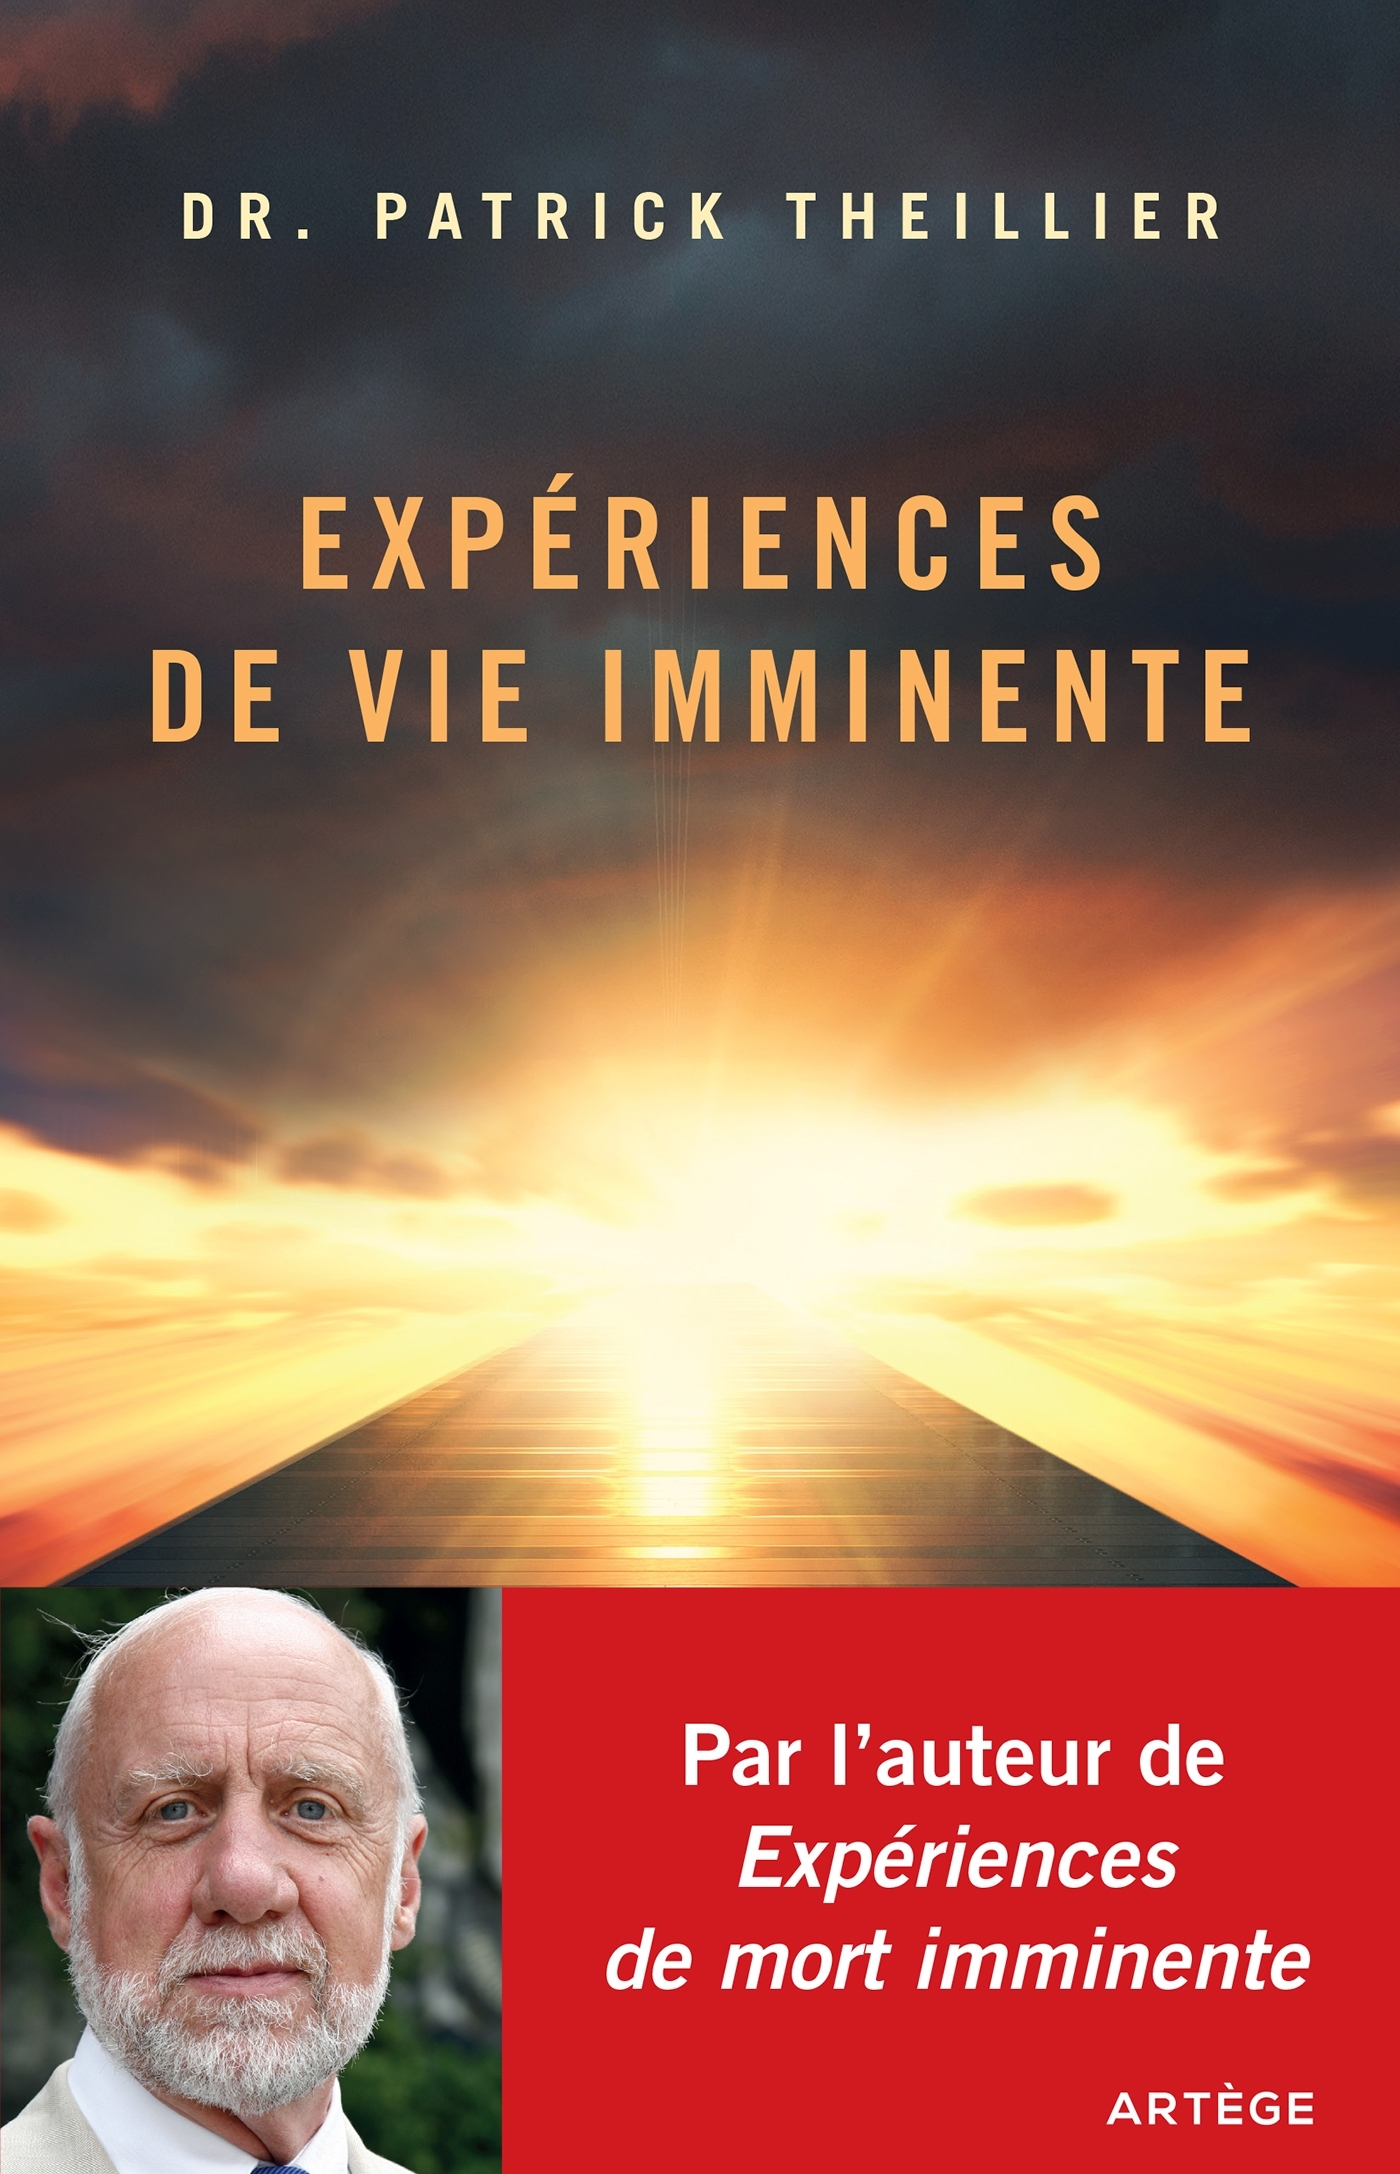 EXPERIENCES DE VIE IMMINENTE